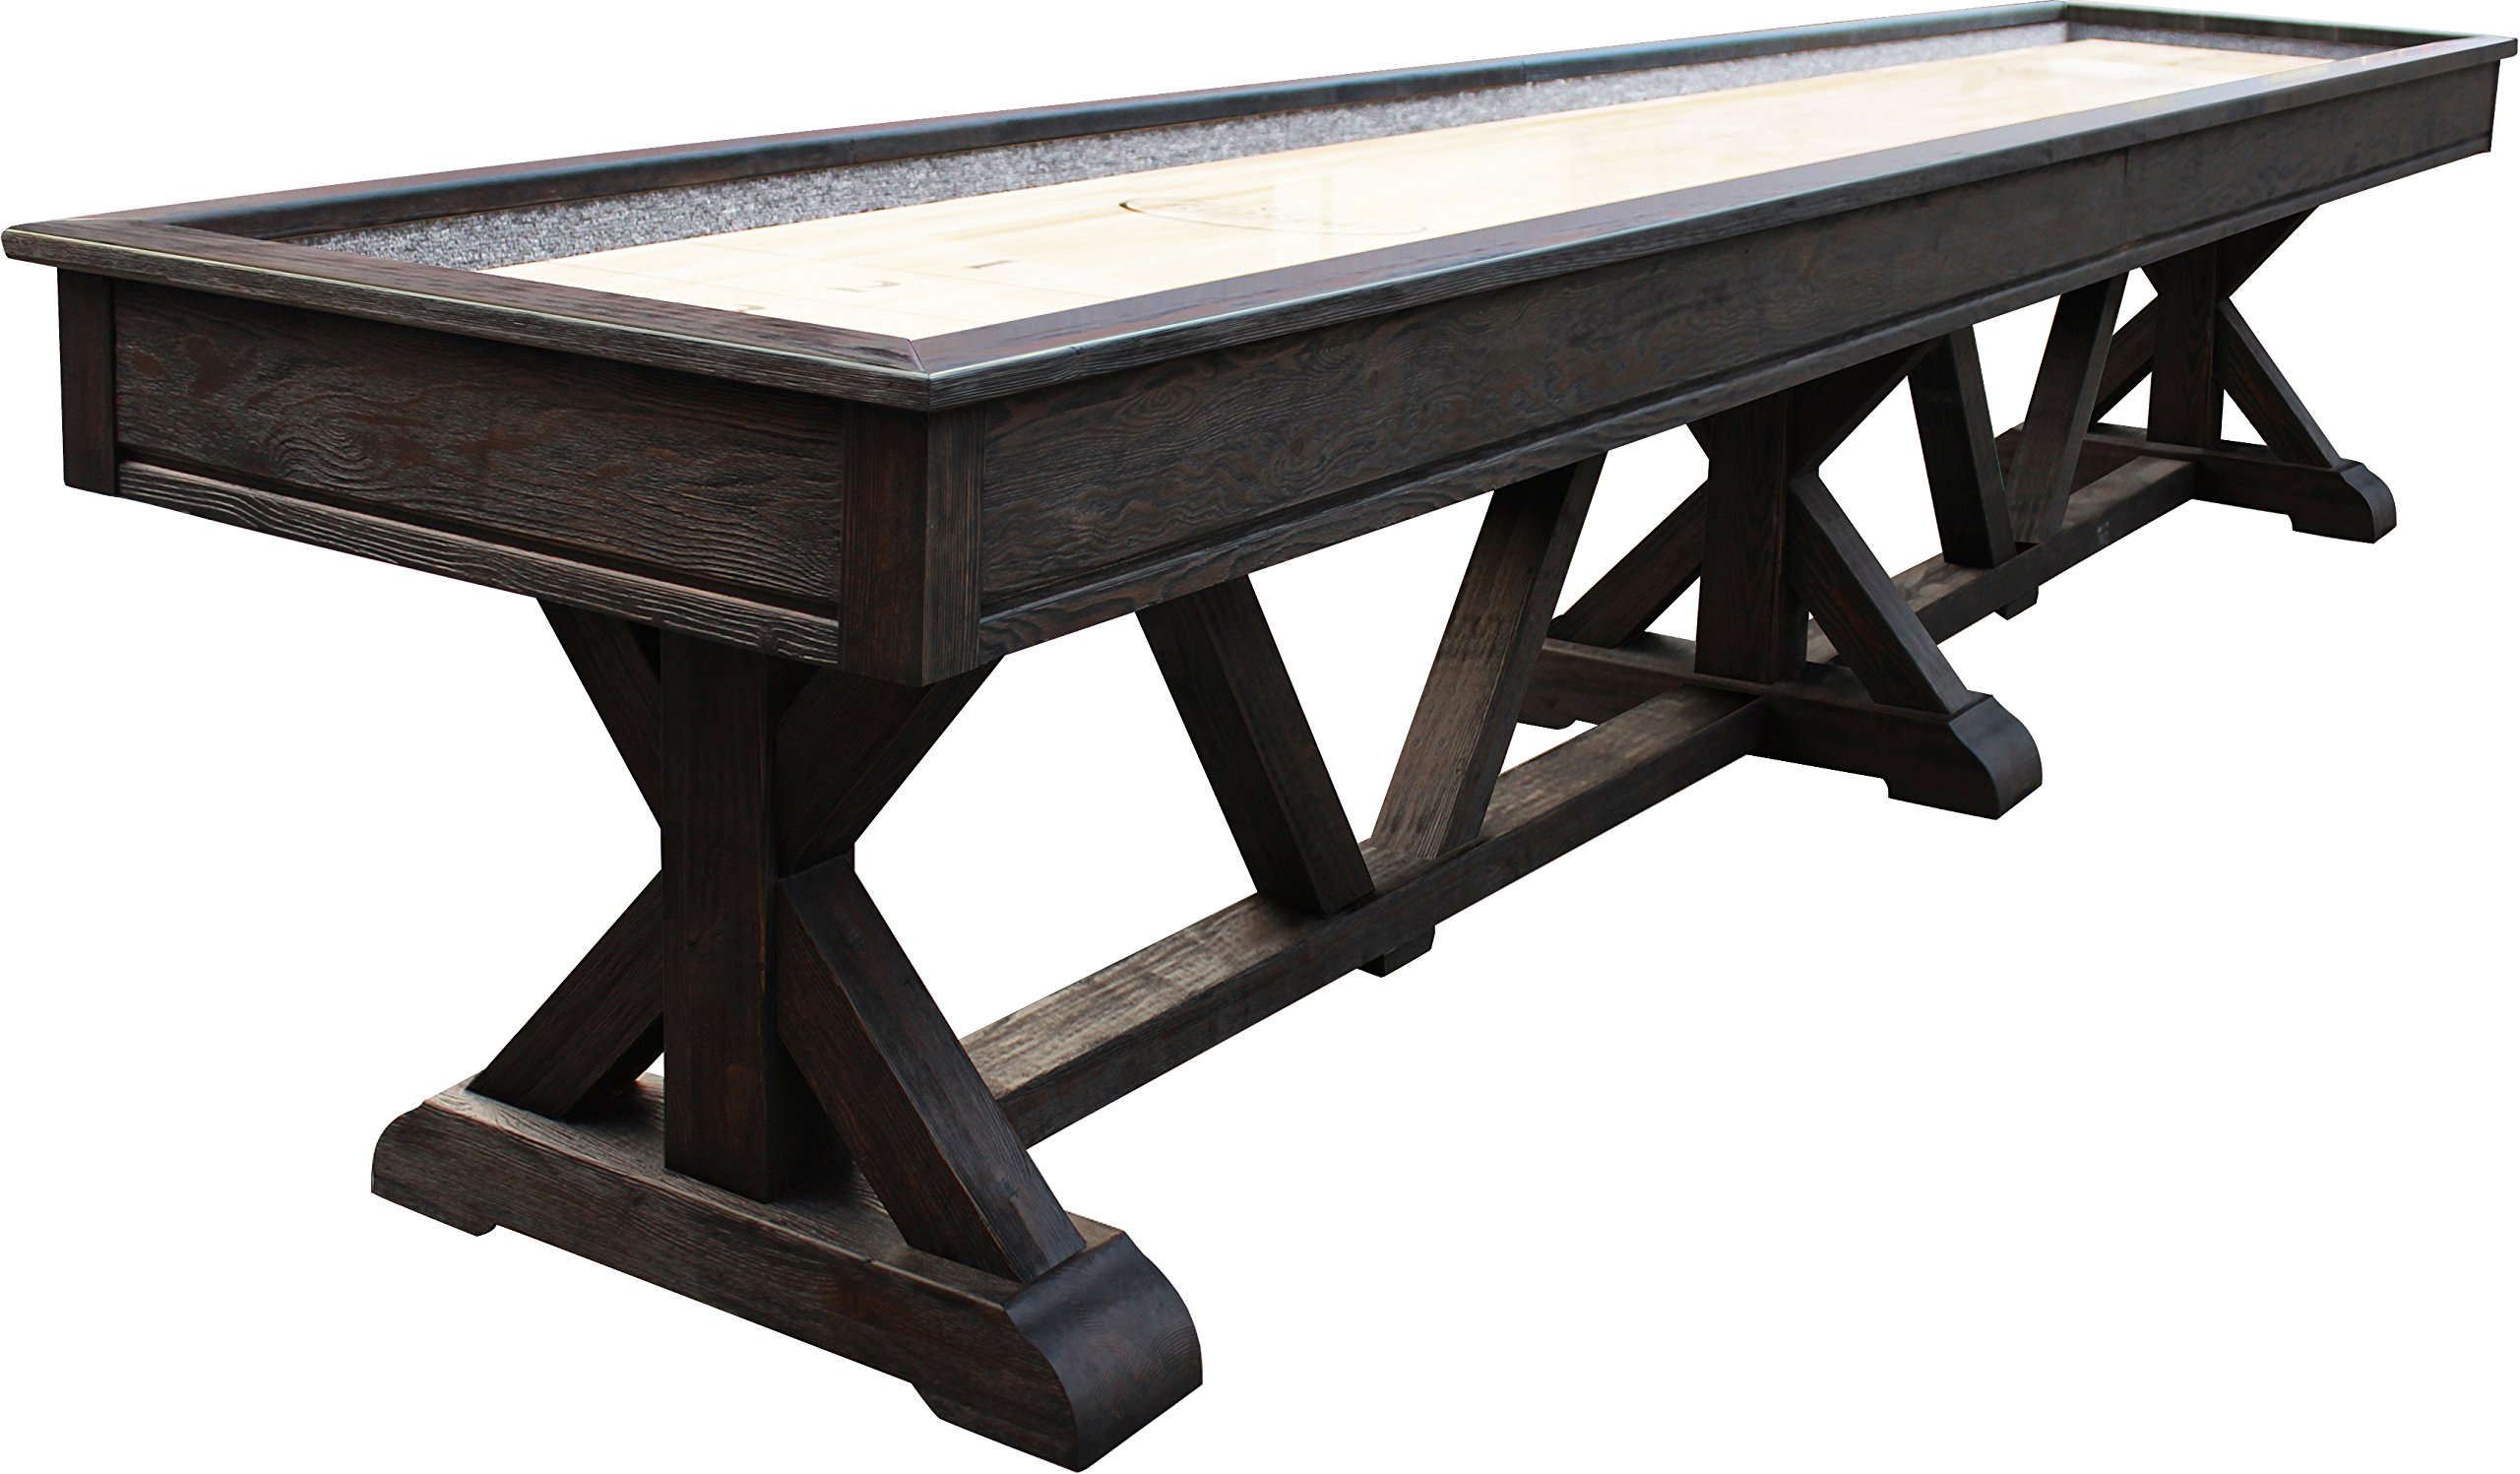 Playcraft Brazos River Weathered Black 16' Pro-Style Shuffleboard Table by Playcraft